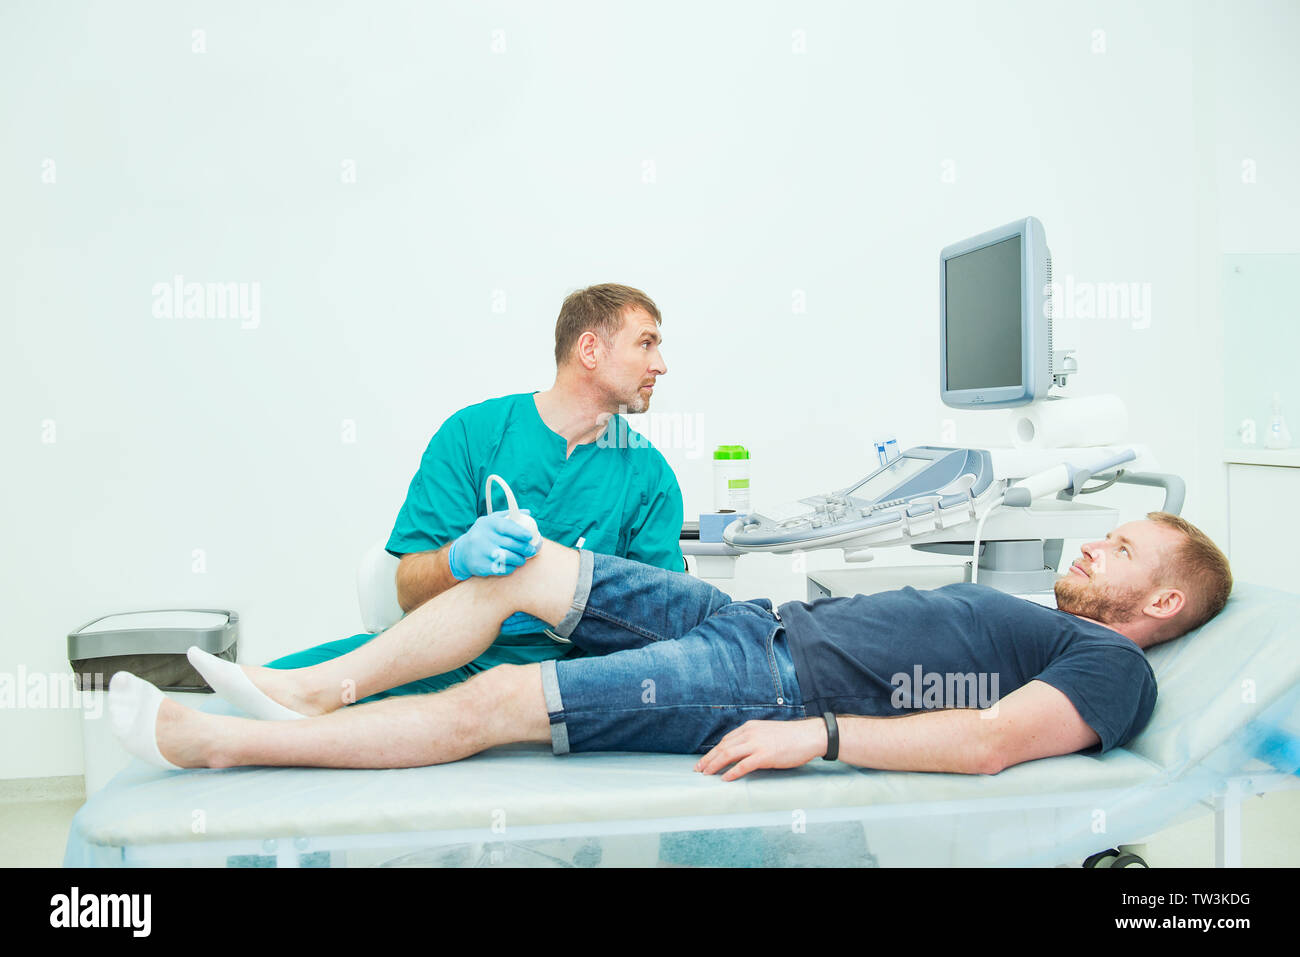 Orthopedist doctor conducting ultrasound examination of patient's knee in clinic. Ultrasound device scan. Sport Injury, Selective focus, copy space - Stock Image